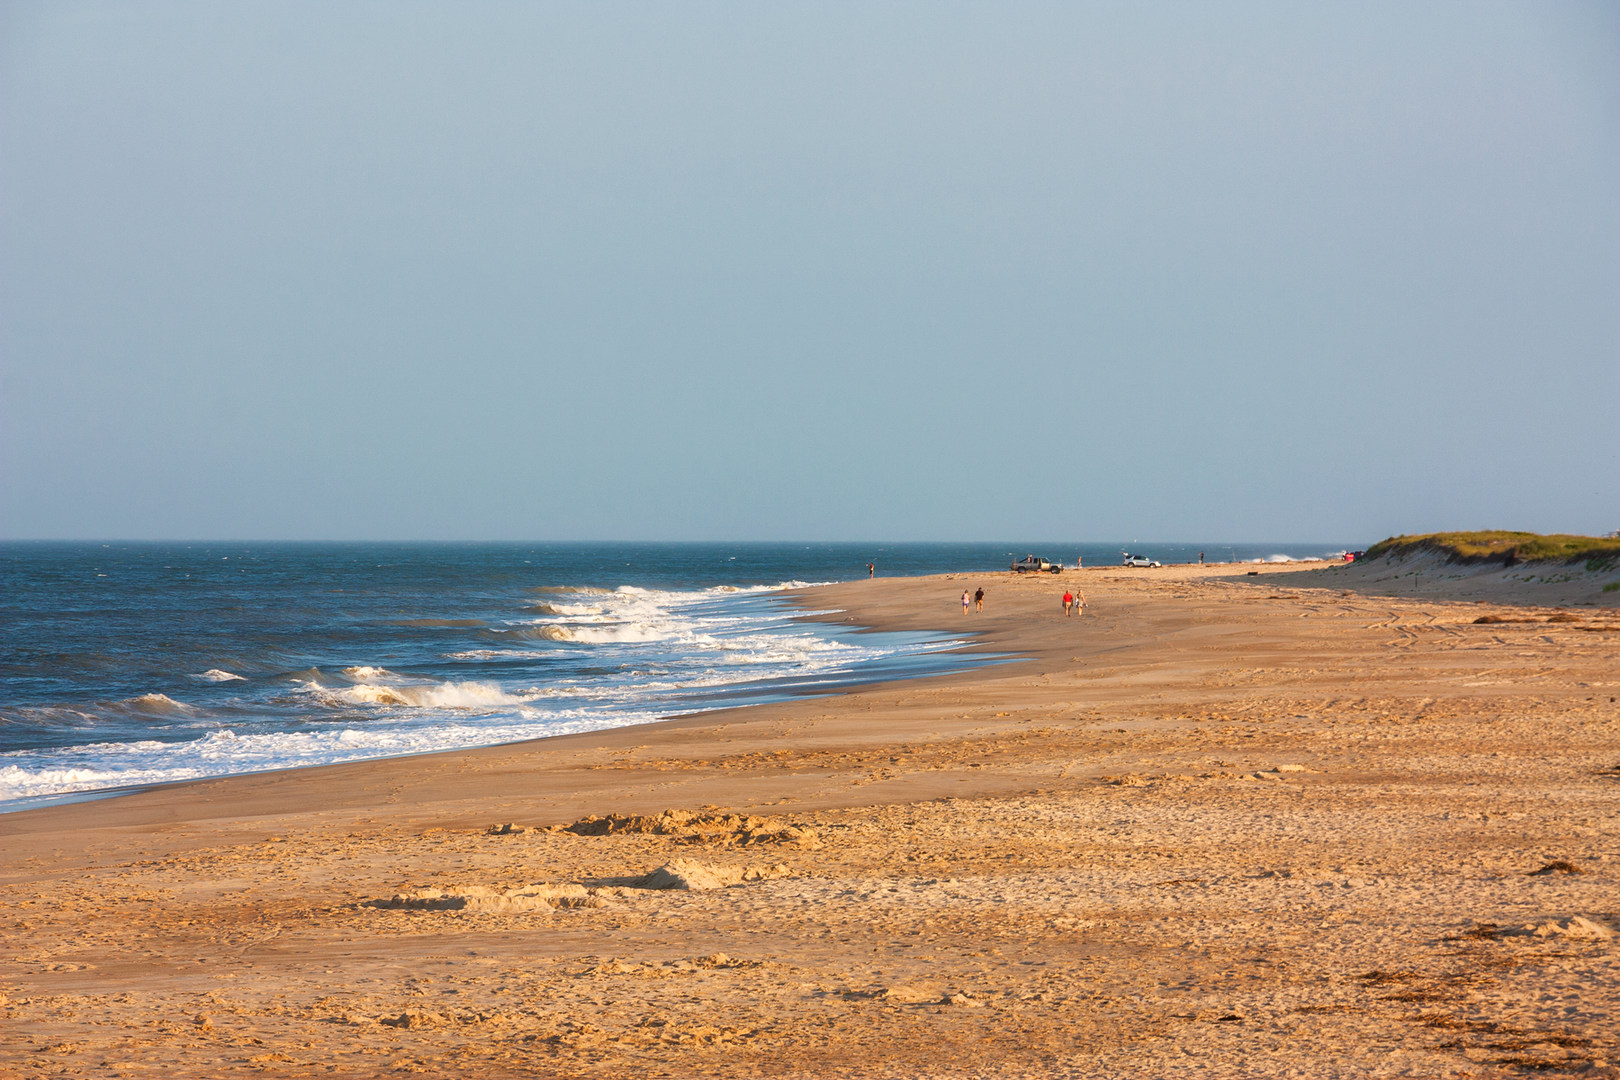 Delaware Seas State Park Wide Open Beach With Surf Fishing From Vehicles At The South Inlet